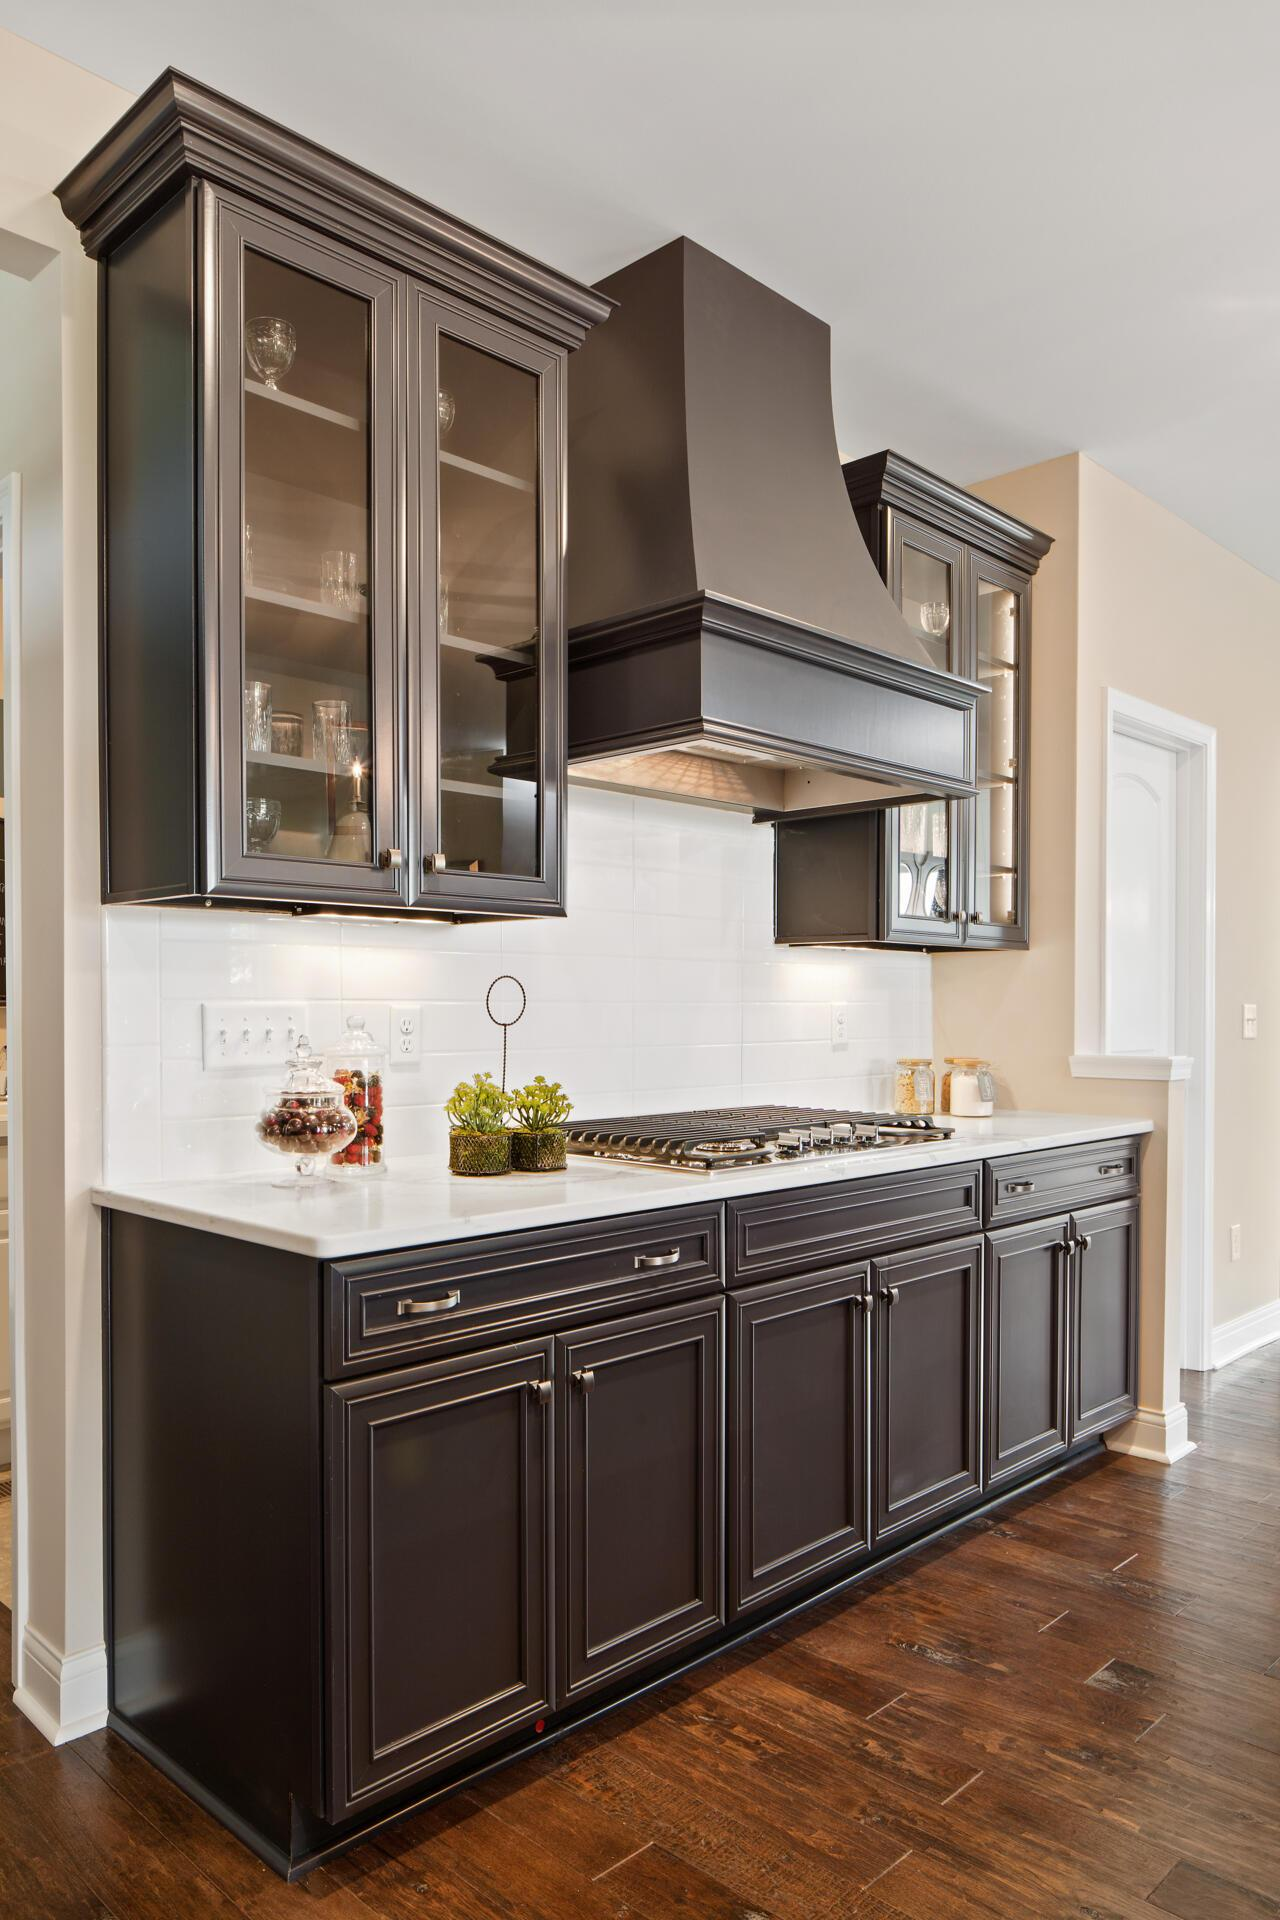 Kitchen featured in the Clearwater By Drees Homes in Cincinnati, KY